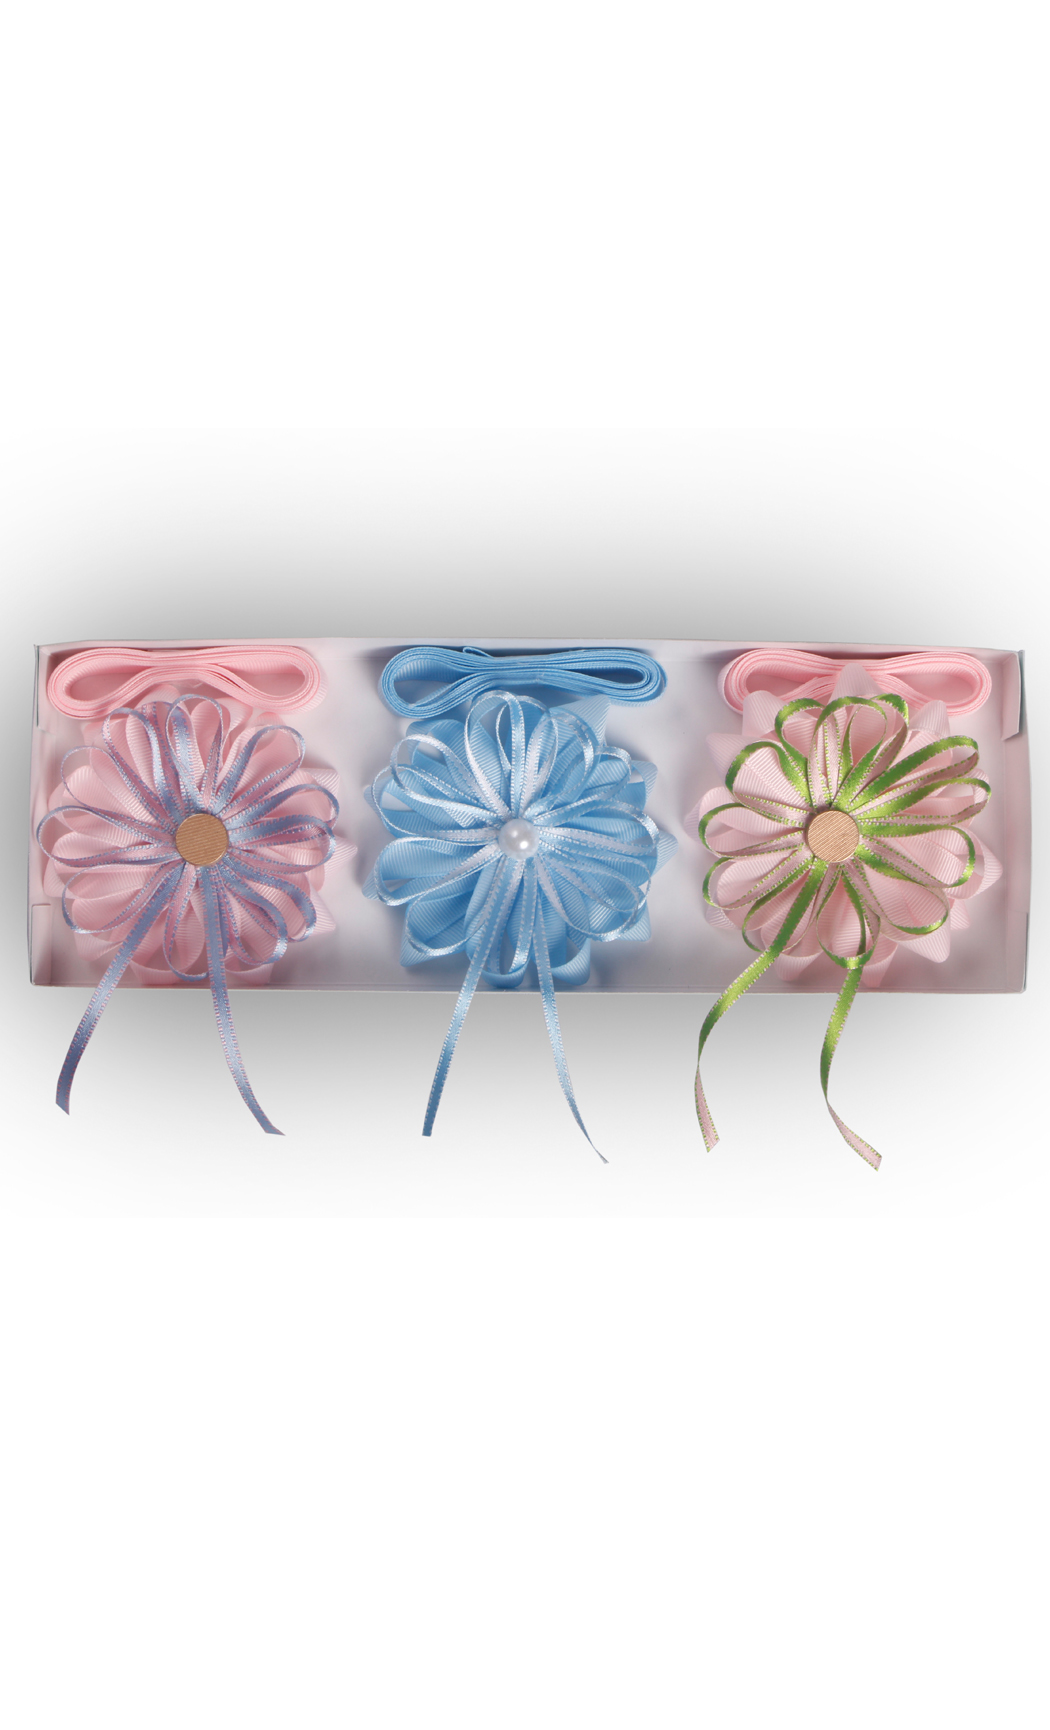 Ready to Stick Reversable Pastel Bows (Set of 3) - Buy Online